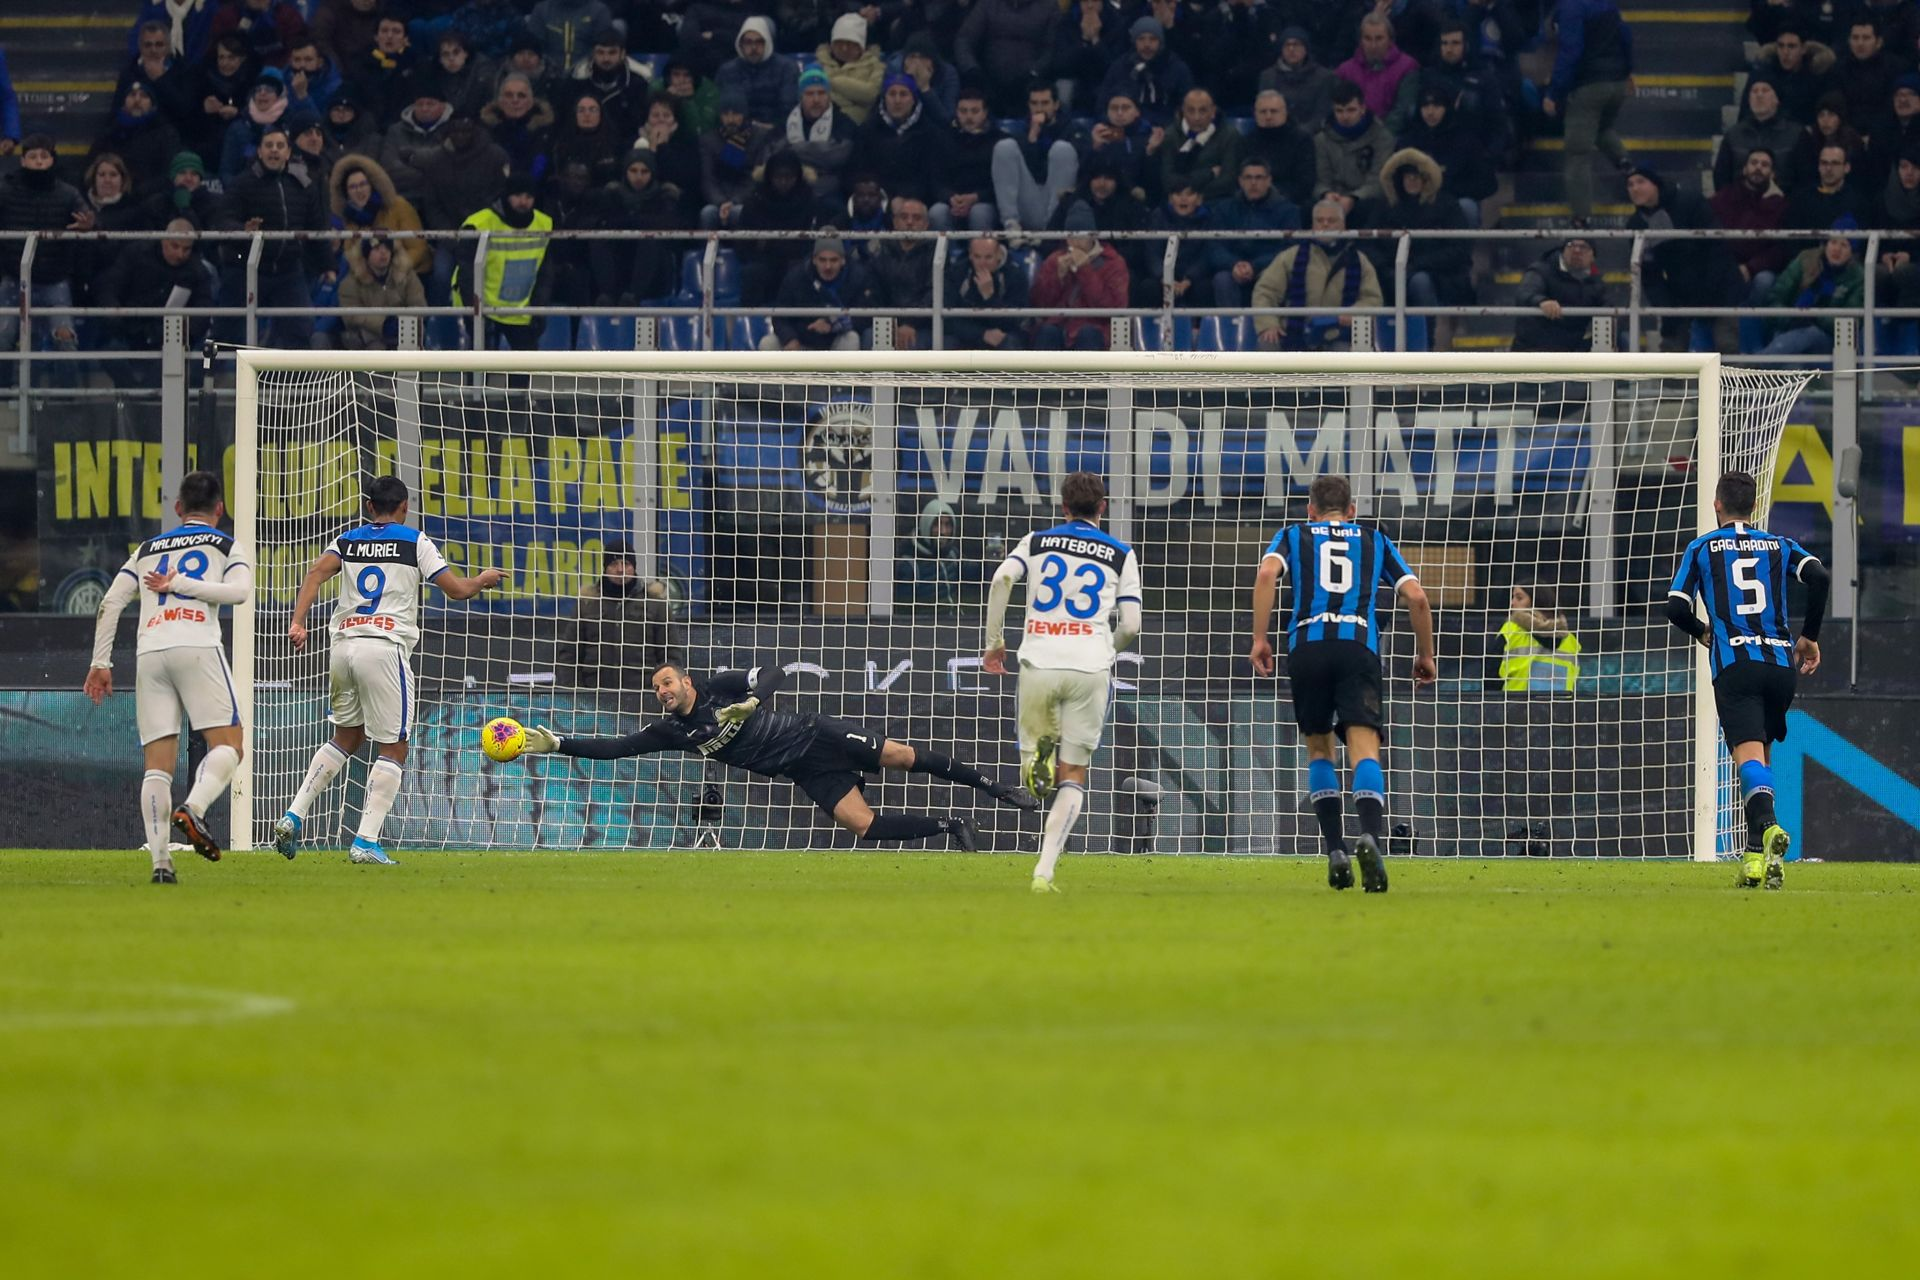 Samir Handanovic of FC Internazionale saves penalty on Luis Muriel of Atalanta BC during the Serie A match between FC Internazionale and Atalanta BC at Stadio Giuseppe Meazza Milan Italy on 11 January 2020. (Photo Fabrizio Carabelli) PILKA NOZNA SEZON 2019/2020 LIGA WLOSKA FOT. SPORTPHOTO24/NEWSPIX.PL ENGLAND OUT! --- Newspix.pl *** Local Caption *** www.newspix.pl mail us: info@newspix.pl call us: 0048 022 23 22 222 --- Polish Picture Agency by Ringier Axel Springer Poland